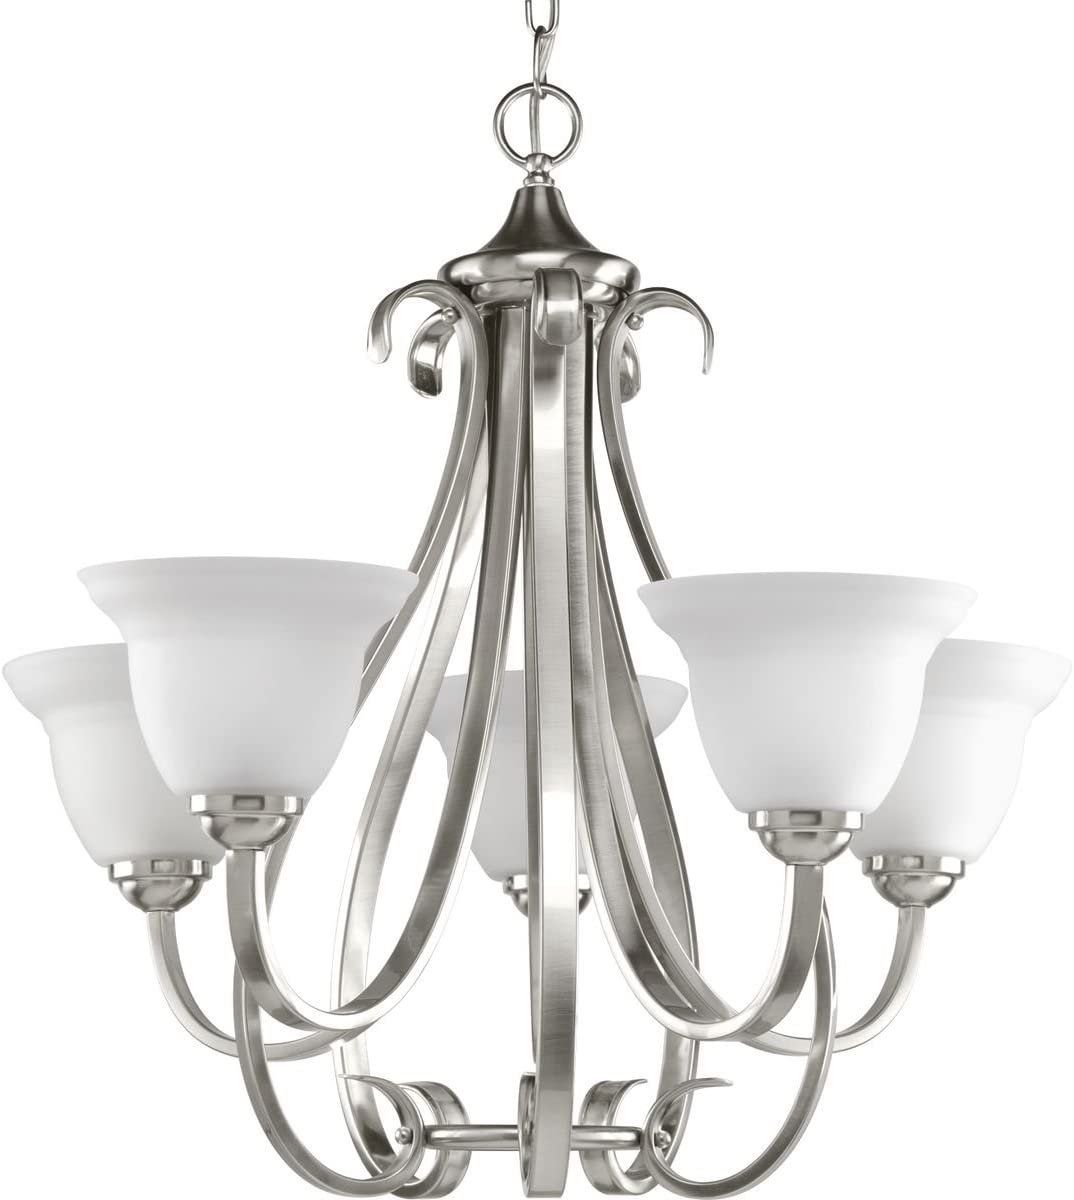 Progress Lighting P4416-09 5-Light Torino Chandelier, Brushed Nickel